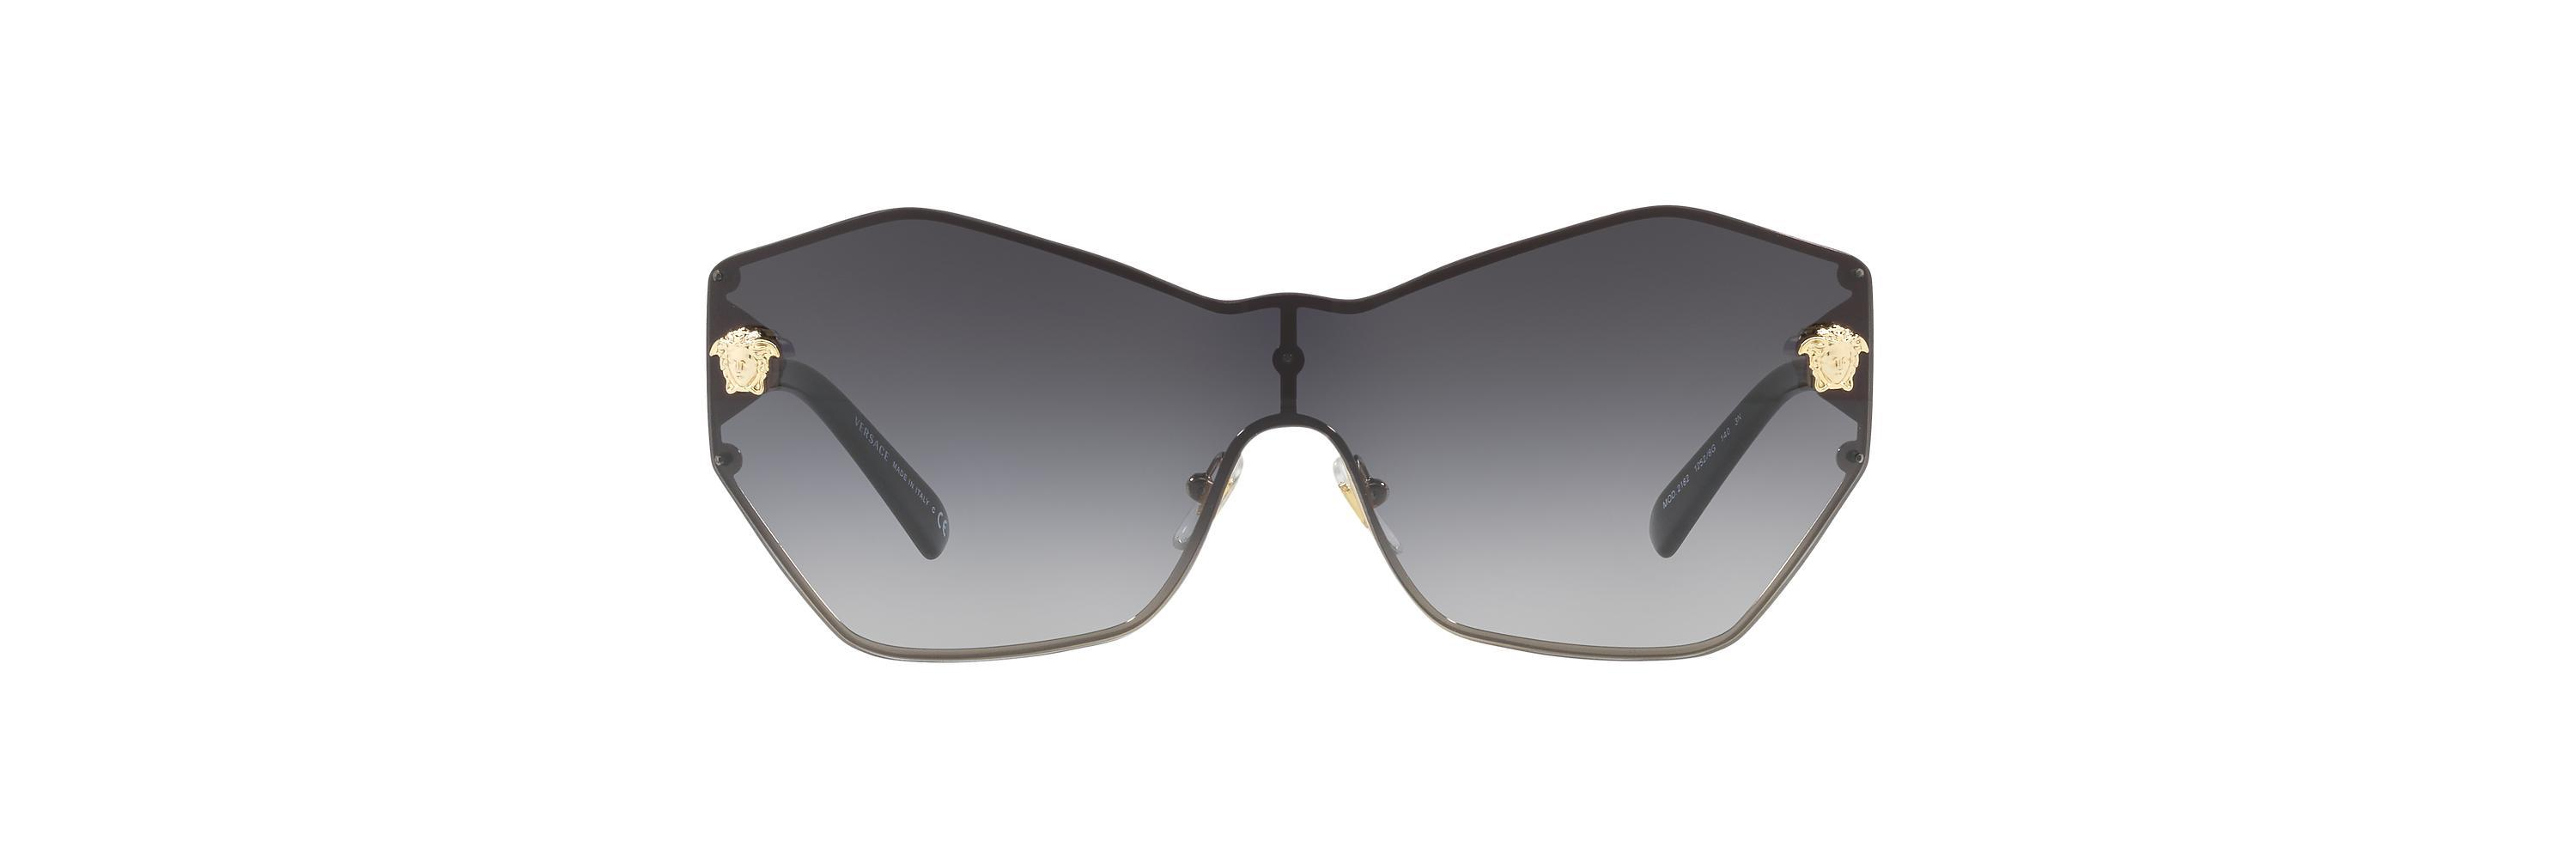 340c097028c8 Versace Ve2182 43 Available First At Sunglass Hut in Gray - Lyst